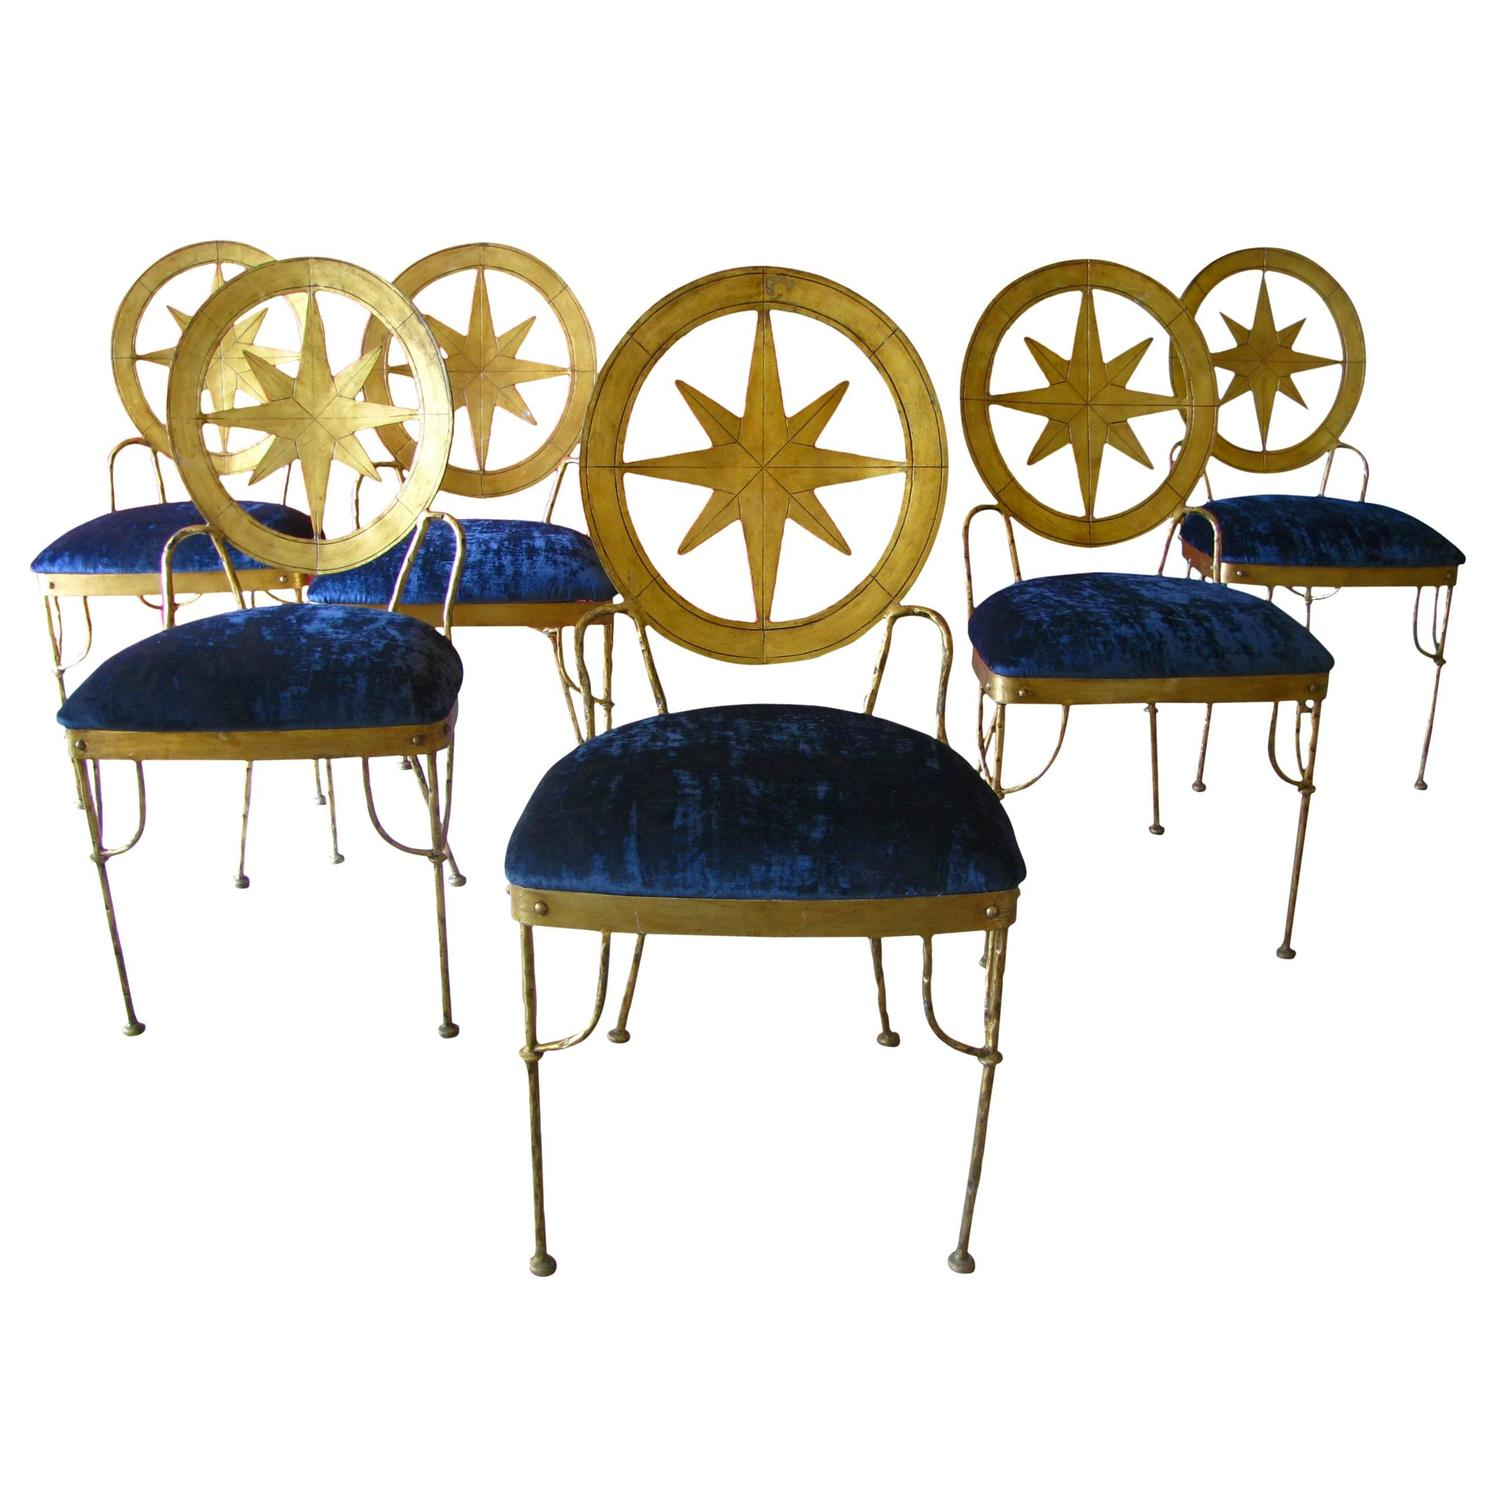 Six French Art Deco Gilded Wrought Iron 1940s Chairs Style